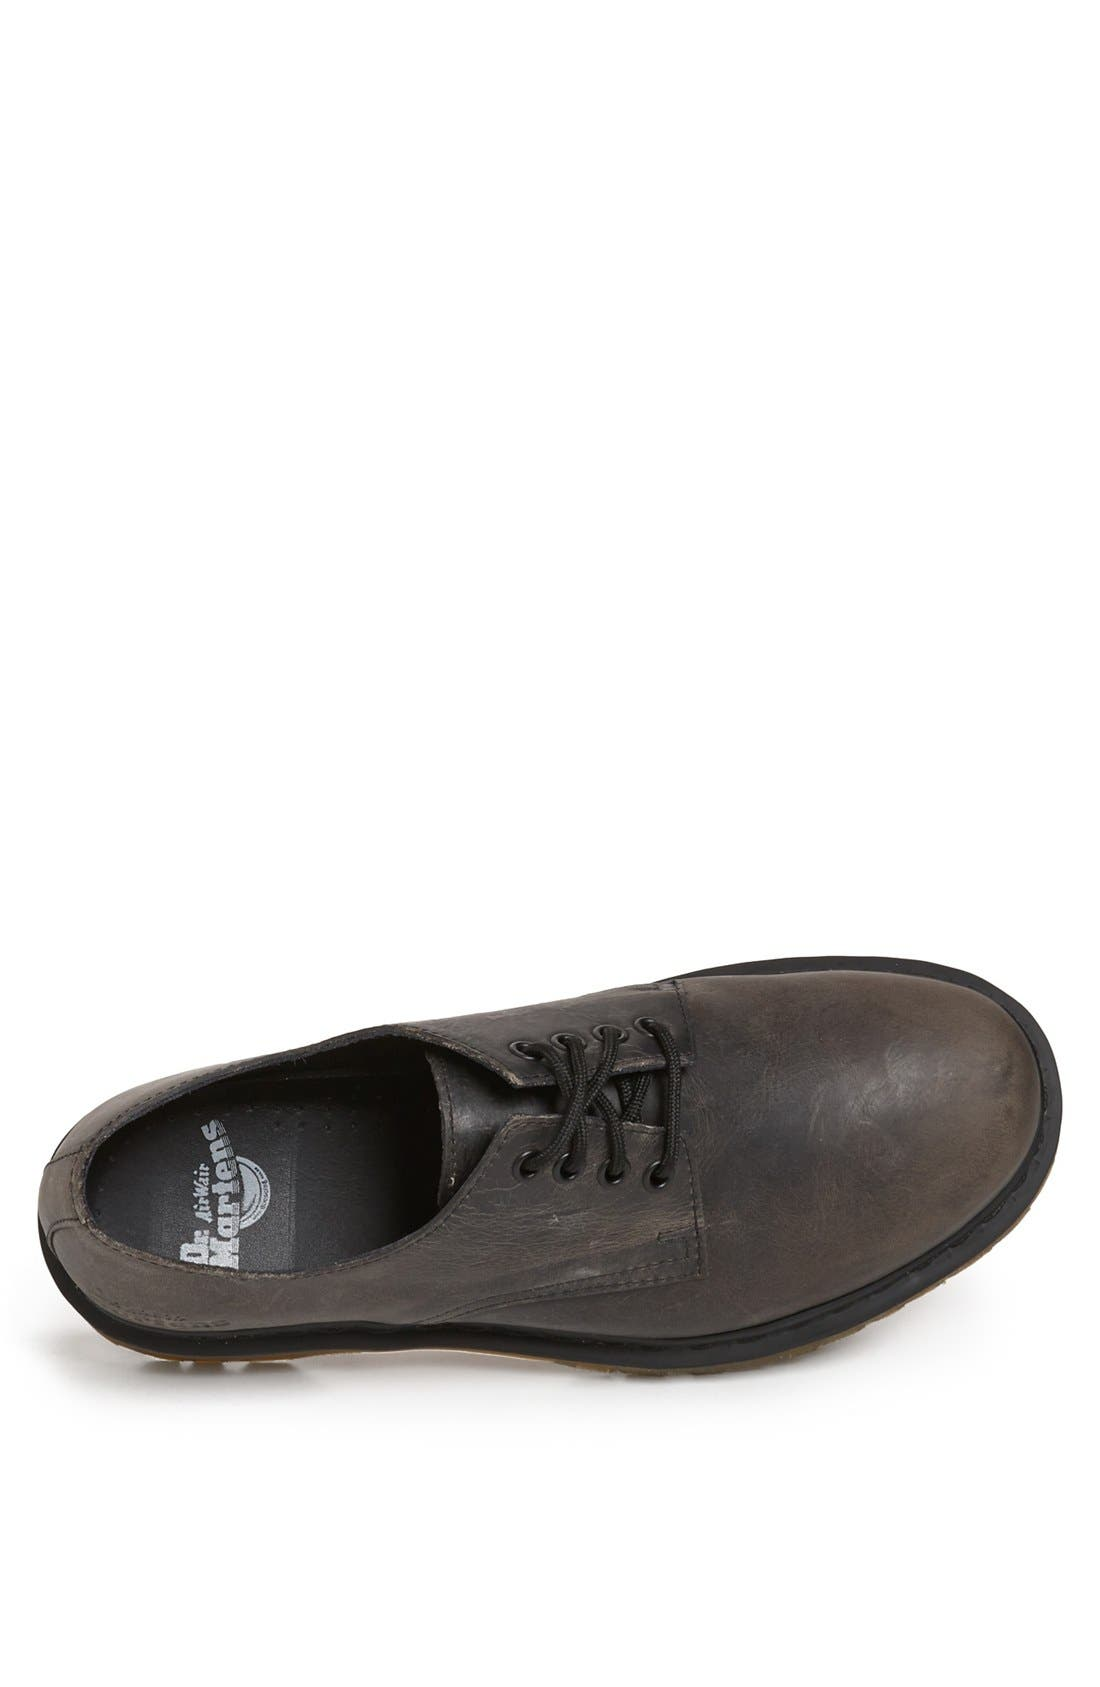 Alternate Image 3  - Dr. Martens 'Stanton' Plain Toe Derby